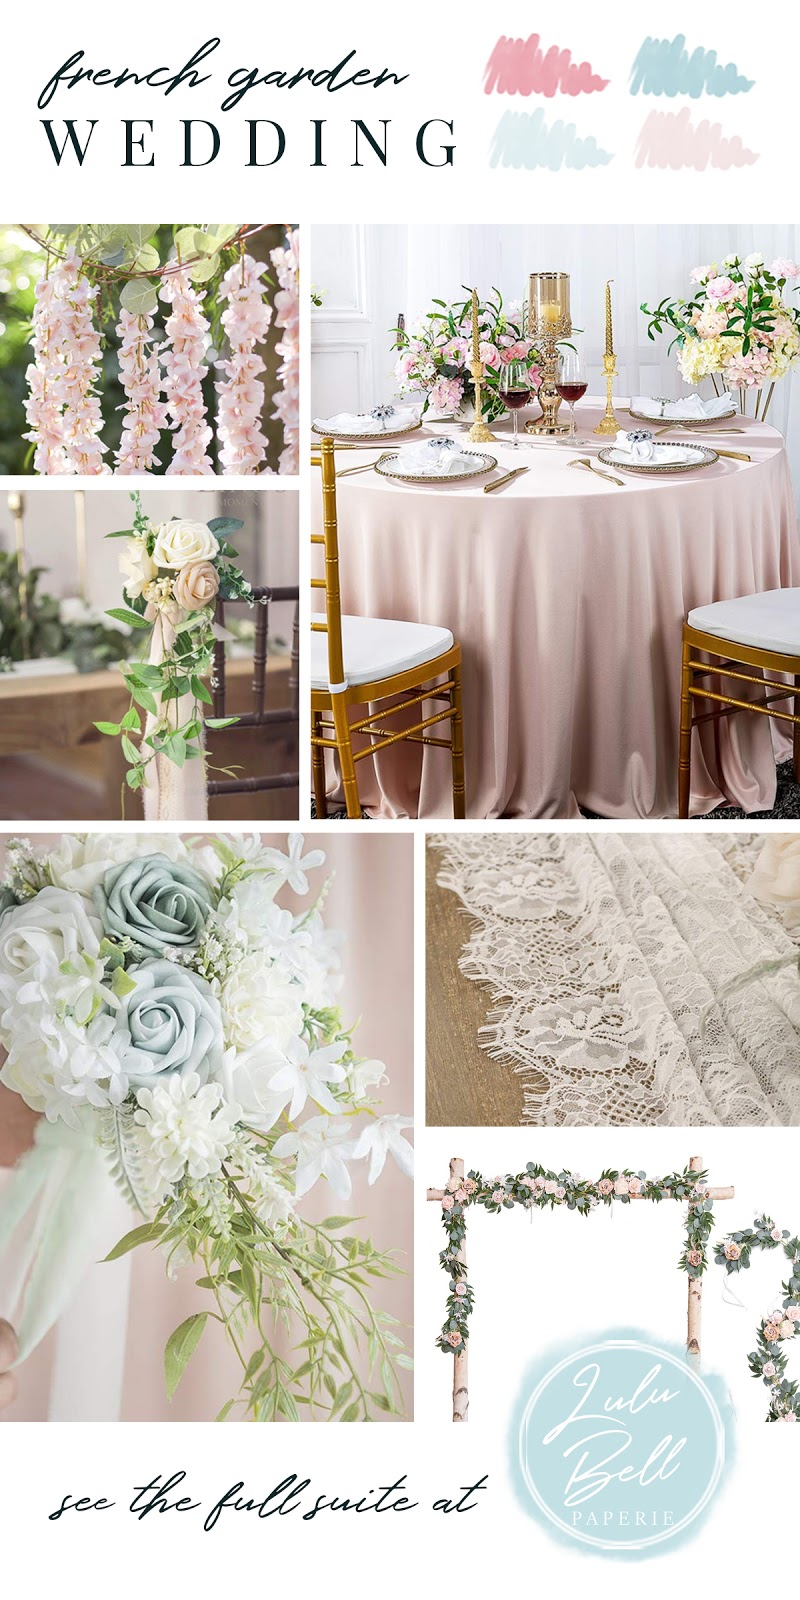 French Garden Floral Wedding Suite Floral Bouquets, Reception Decor, Table Setting Linens, and Floral Garlands and Swags